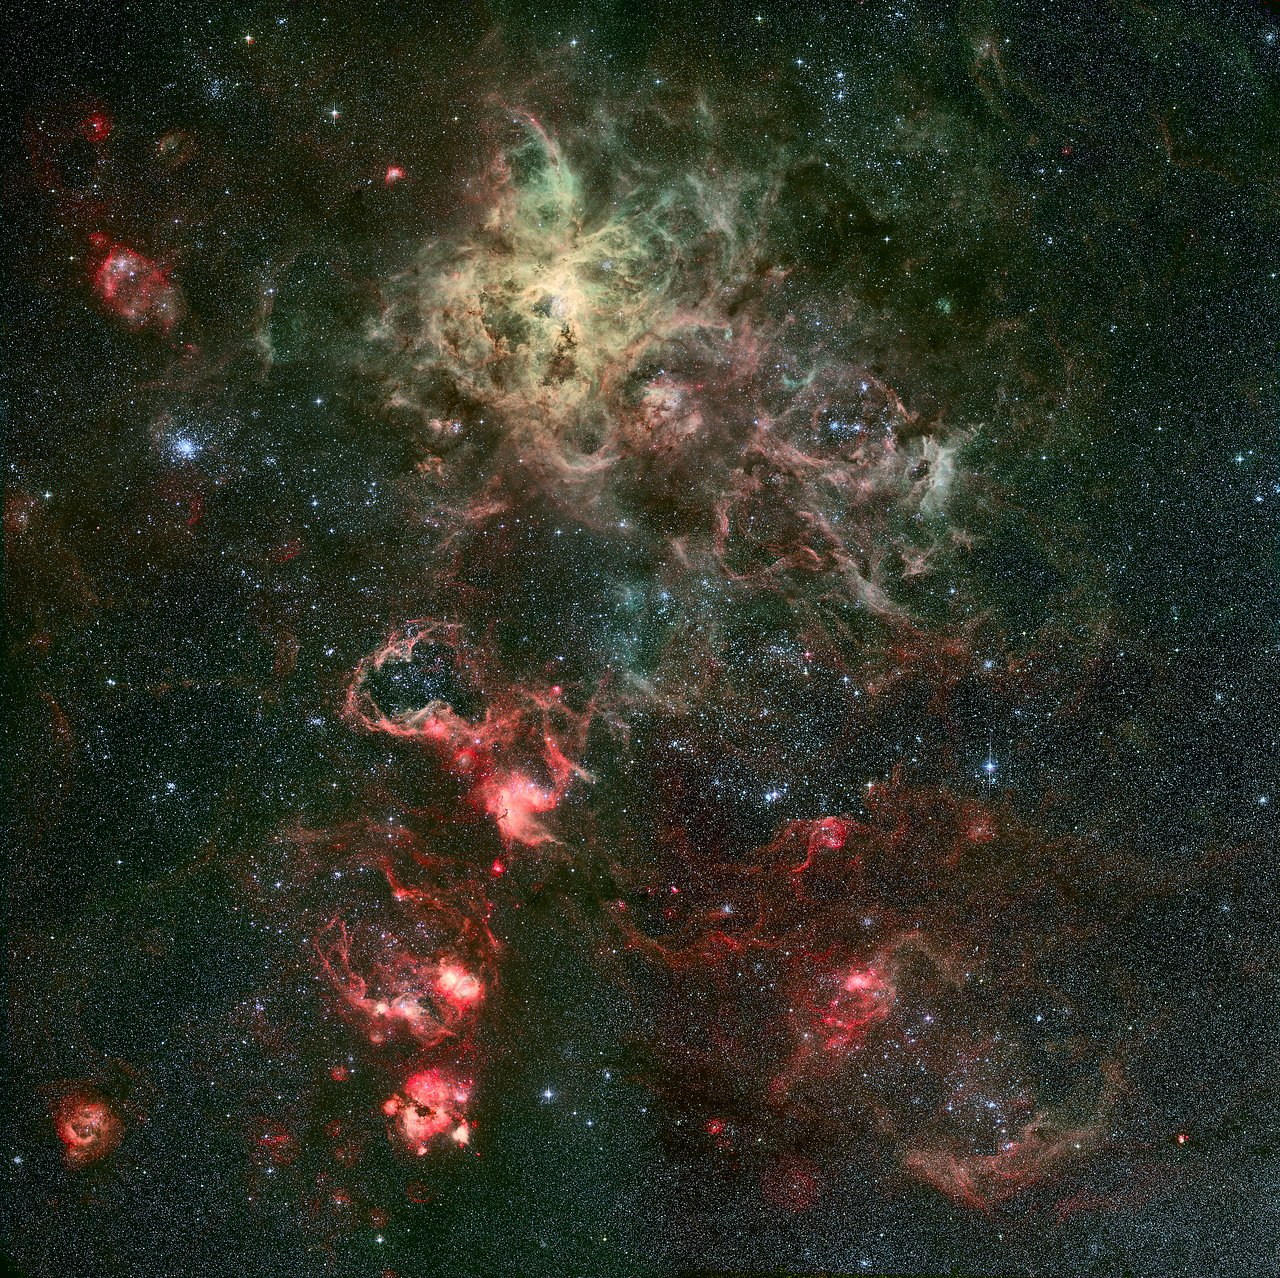 Mounted image 030: Portrait of a dramatic stellar nursery